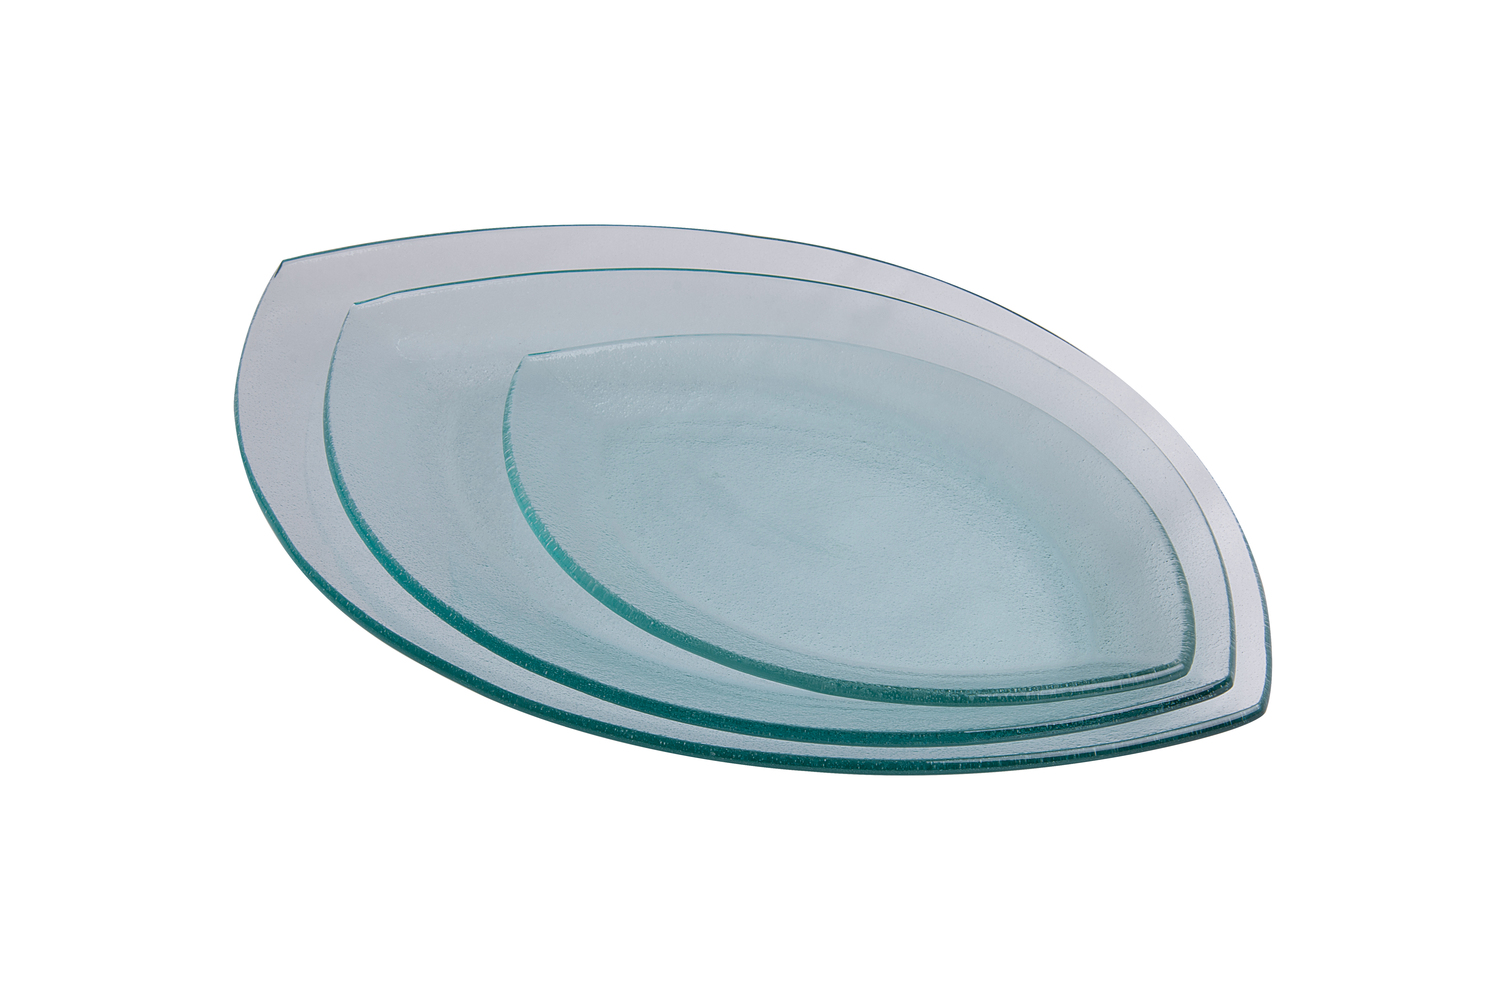 Ellipse Tempered Plate - 42x27 cm